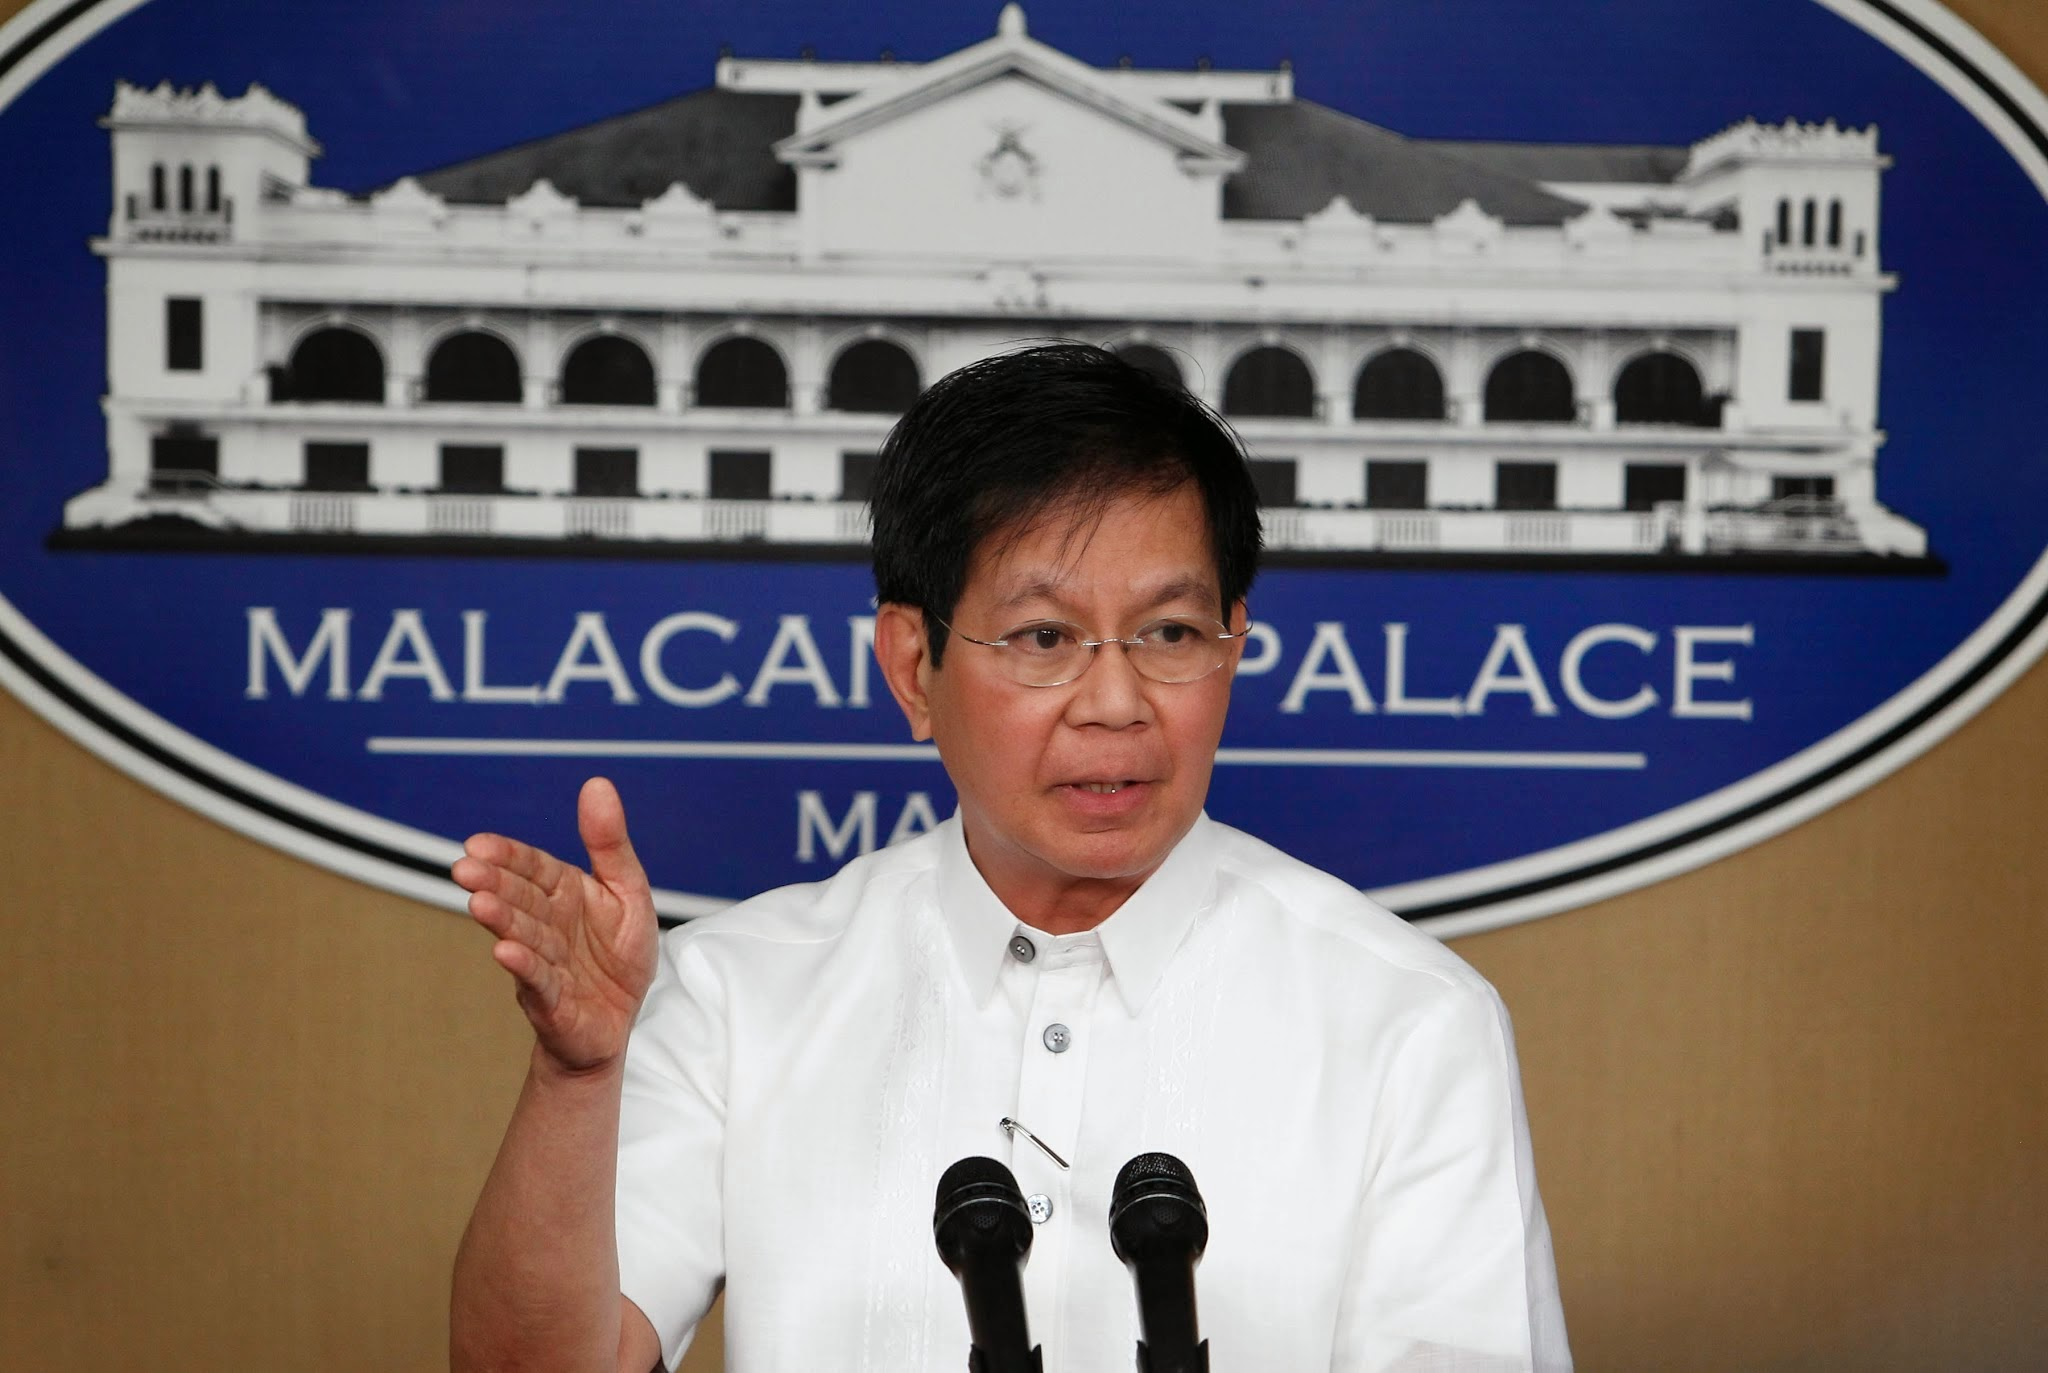 Presidential Assistant for Rehabilitation and Recovery Panfilo Lacson, updates members of Malacanang Press Corps on the rehabilitation efforts in the Yolanda stricken provinces in the Visayas during a press briefing held at Malacañang. (Photo by Benhur Arcayan/Malacañang Photo Bureau)